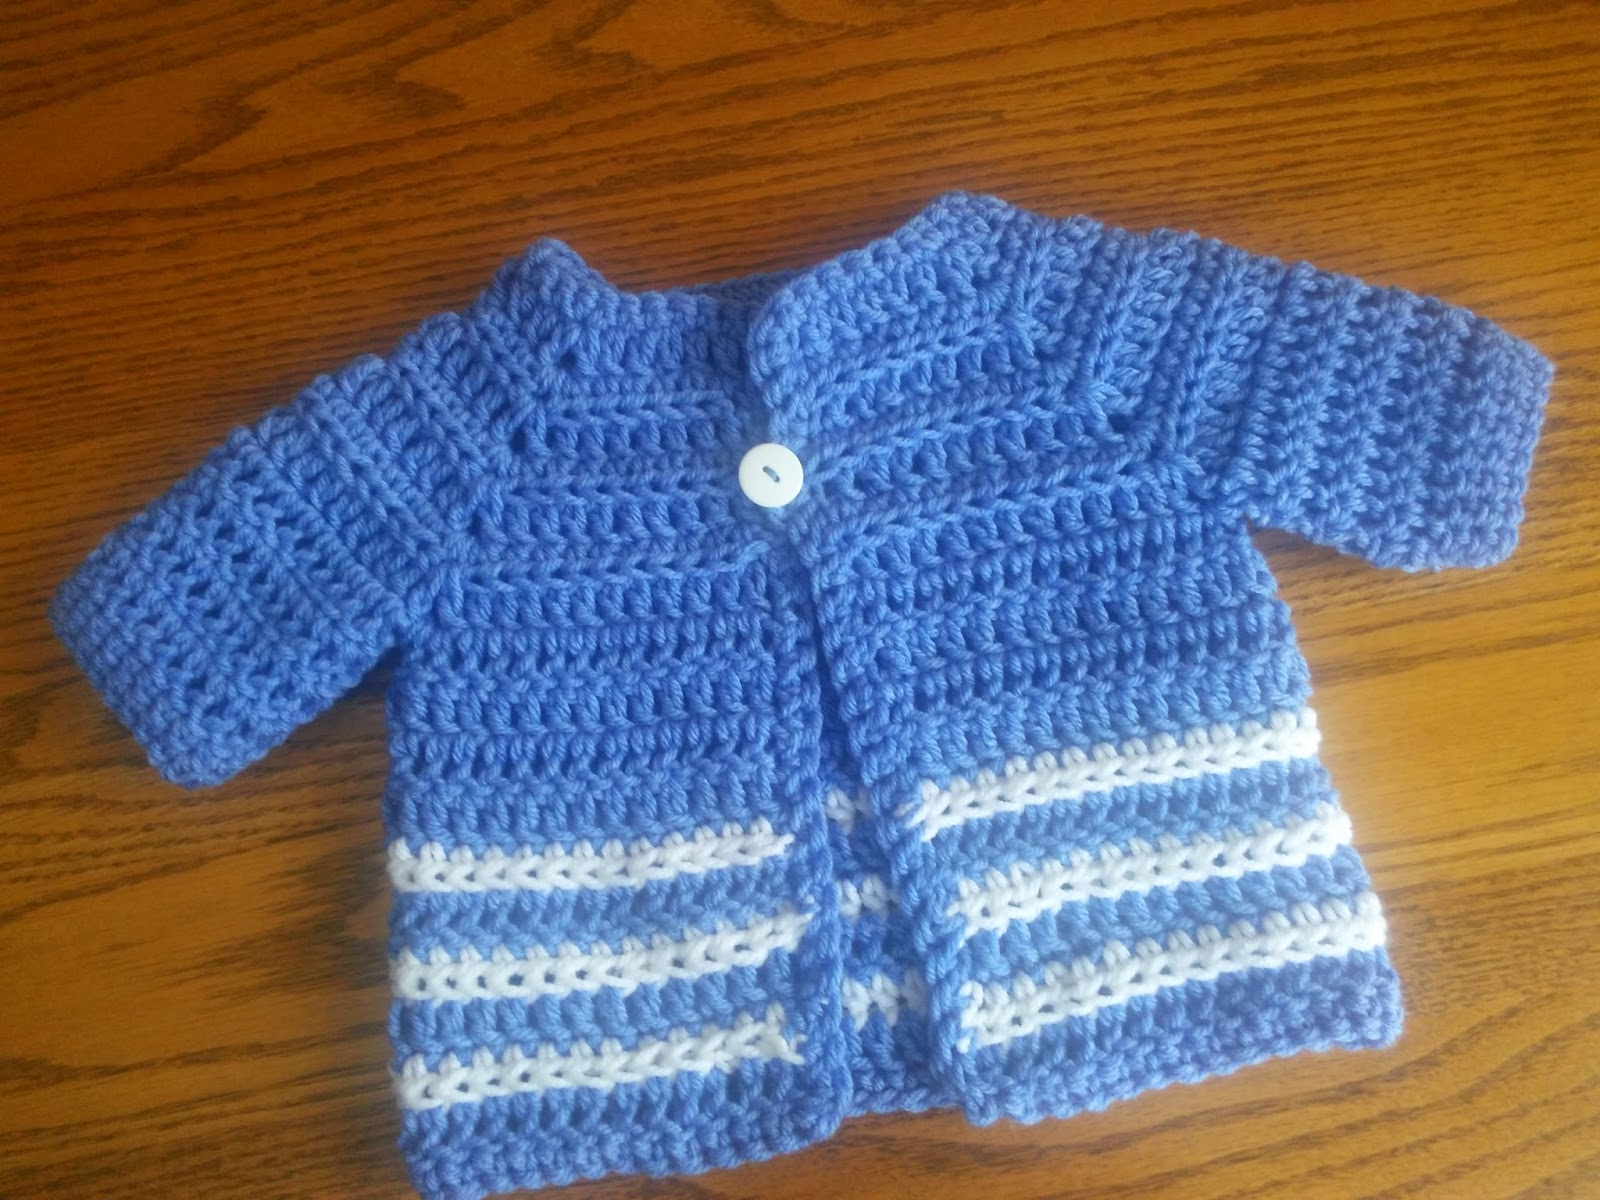 Free Crochet Pattern For Easy Baby Sweater : Craft Brag: Baby Boy Crochet Sweater - Pattern